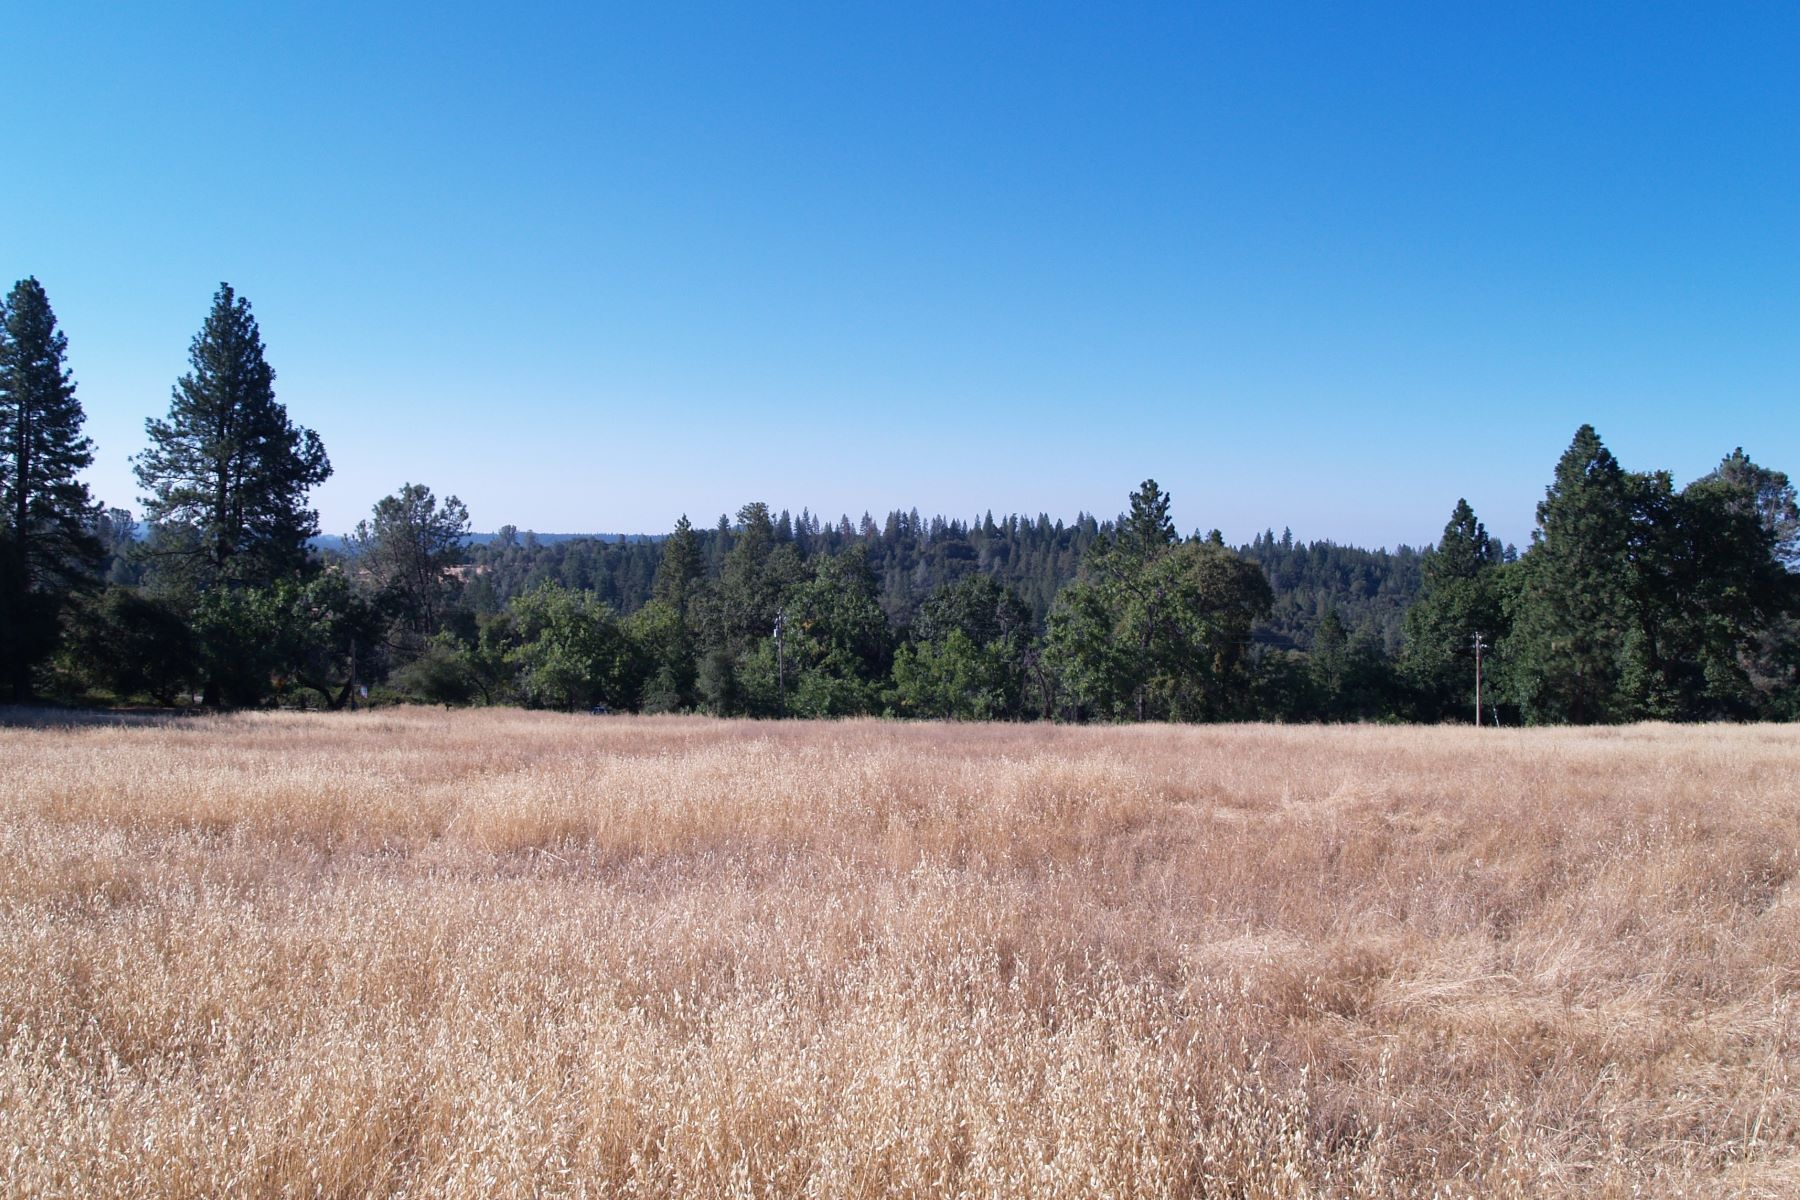 Land for Sale at 5 ACRES Hale Road 19625 Hale Road Volcano, California 95689 United States